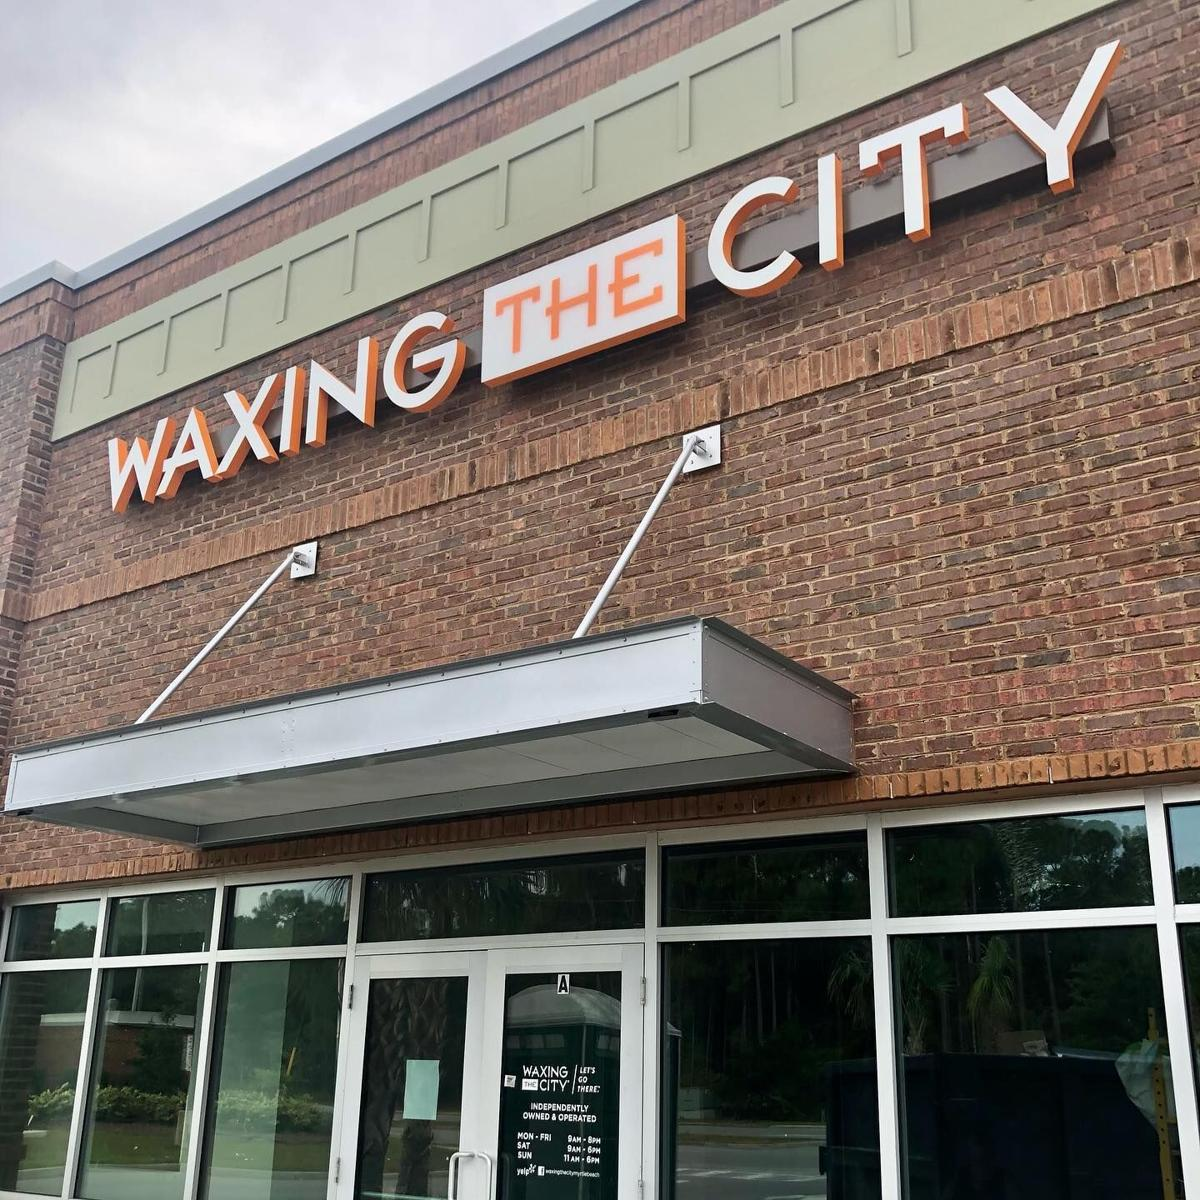 Waxing the City in Myrtle Beach